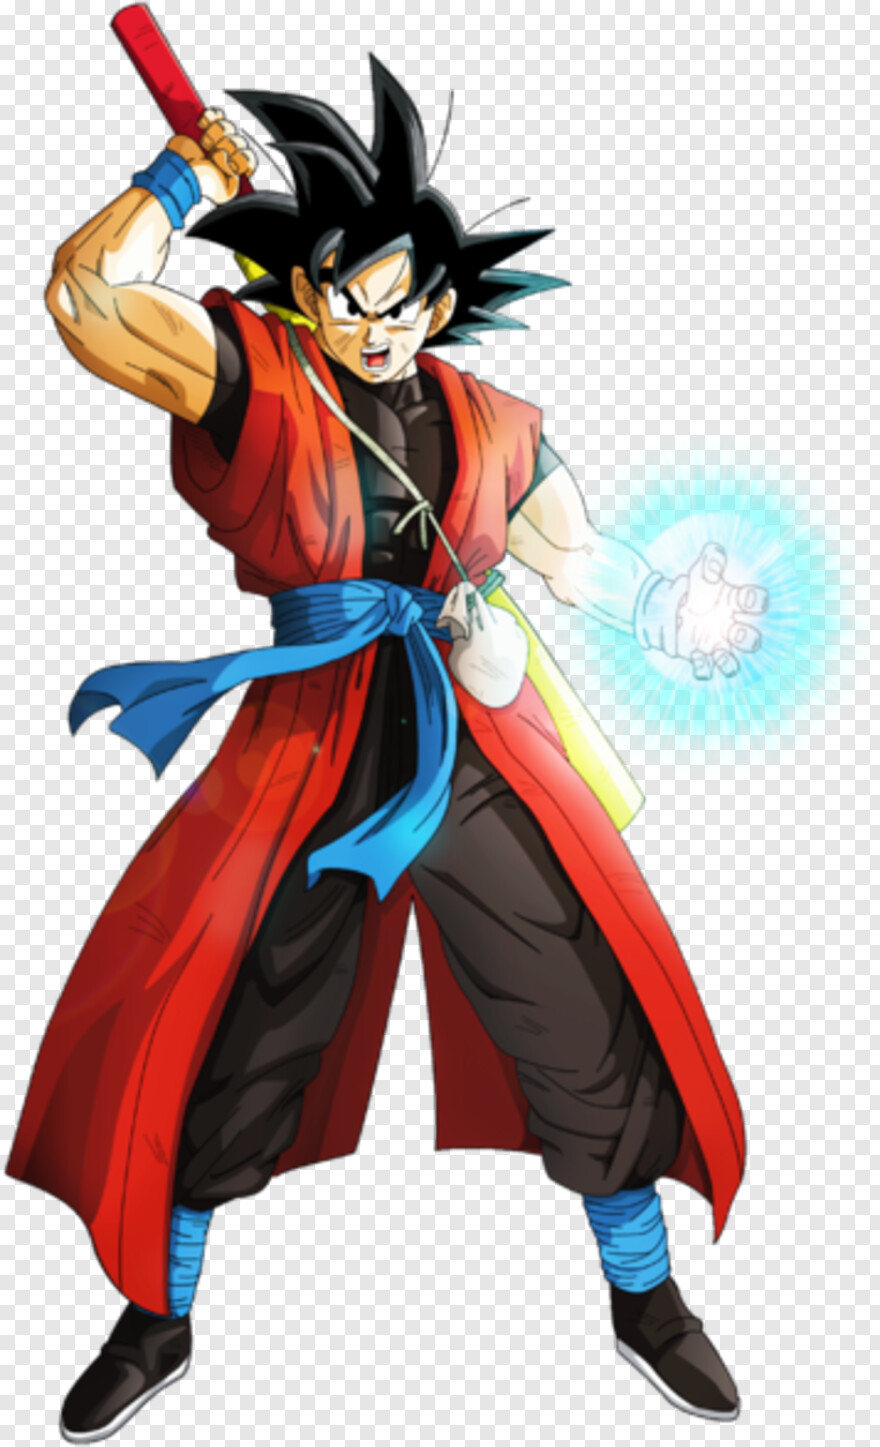 Goku Super Saiyan 4 Xeno Goku Png Download 420x586 2774394 Png Image Pngjoy They must be uploaded as png files, isolated on a transparent background. goku super saiyan 4 xeno goku png